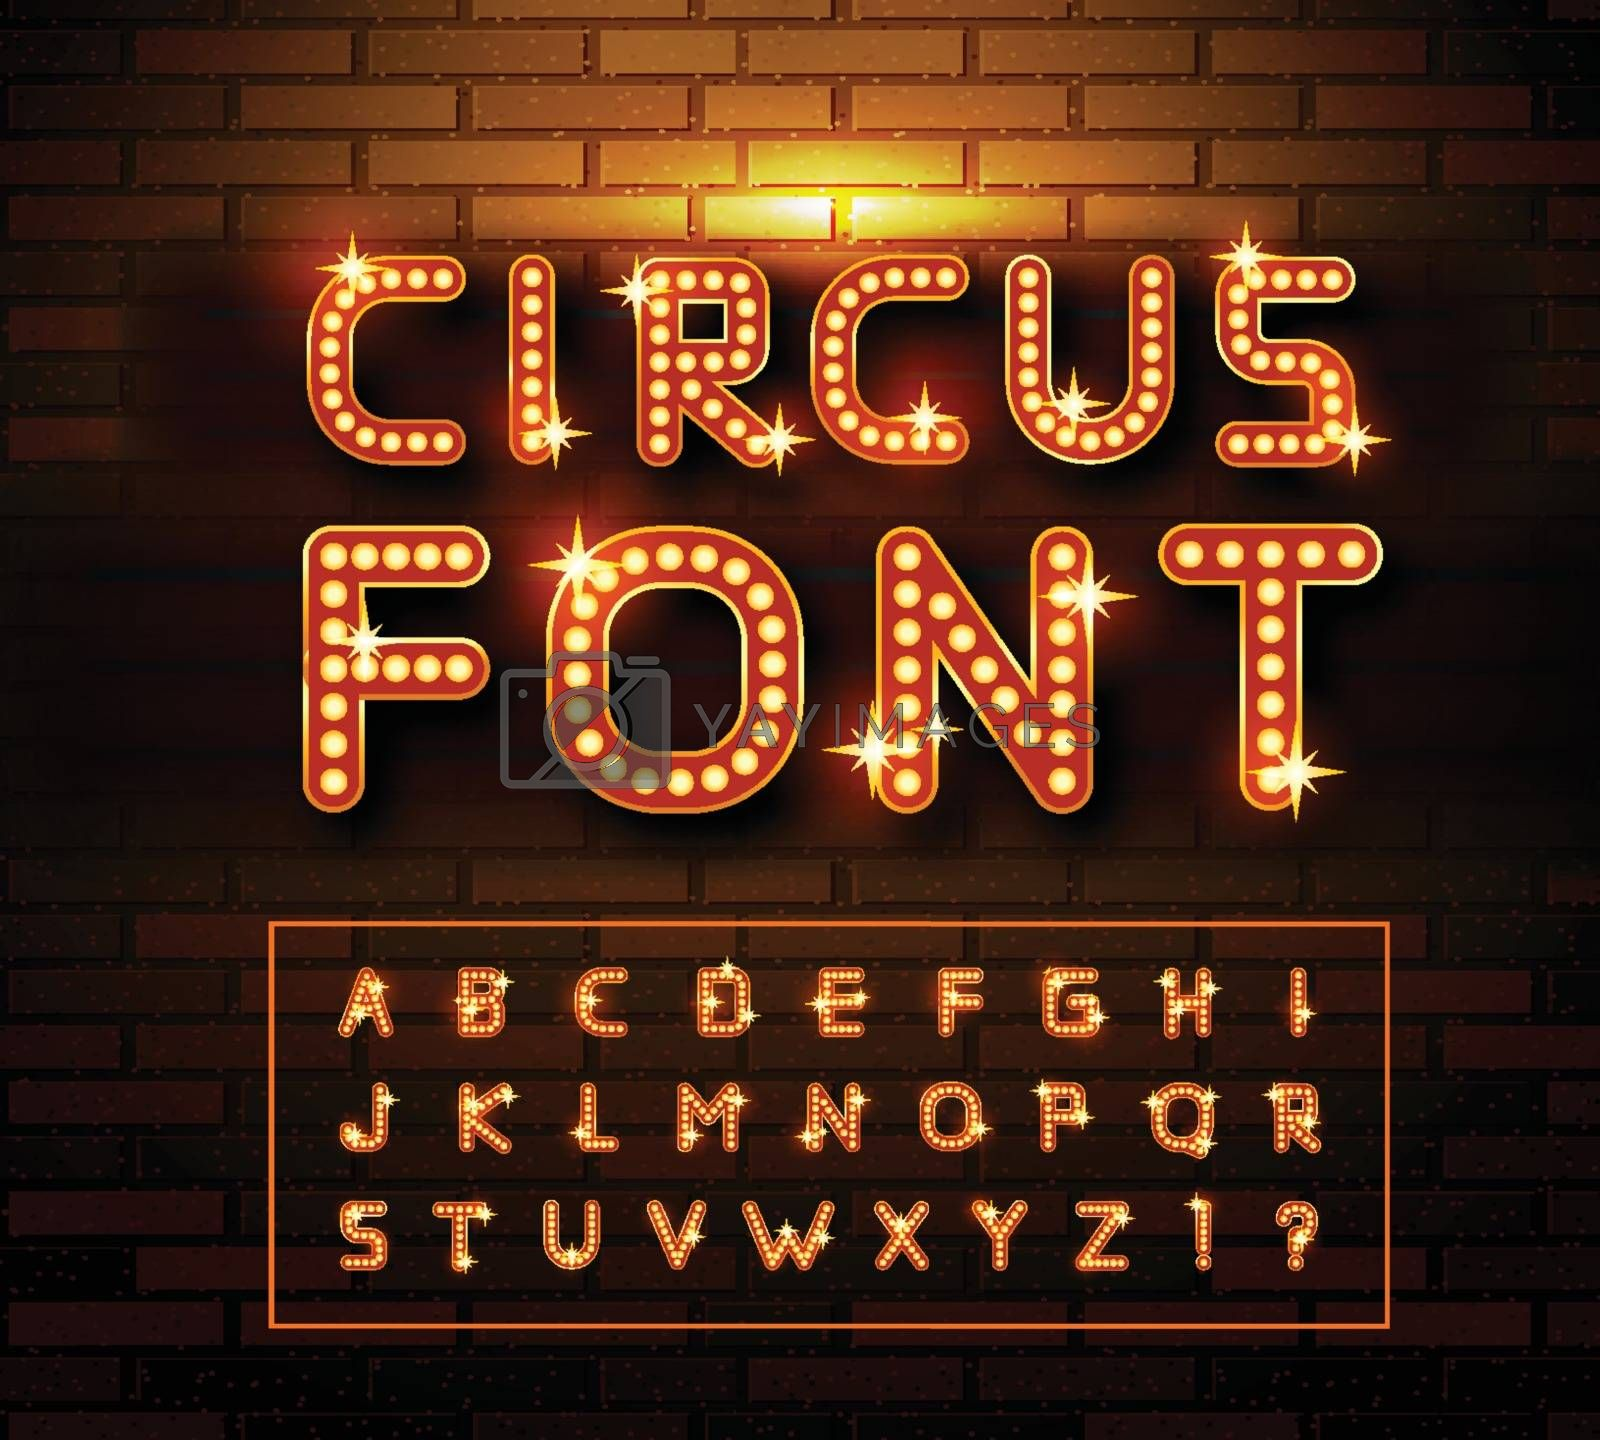 Circus marquee fonts on brick wall background. Vector illustration